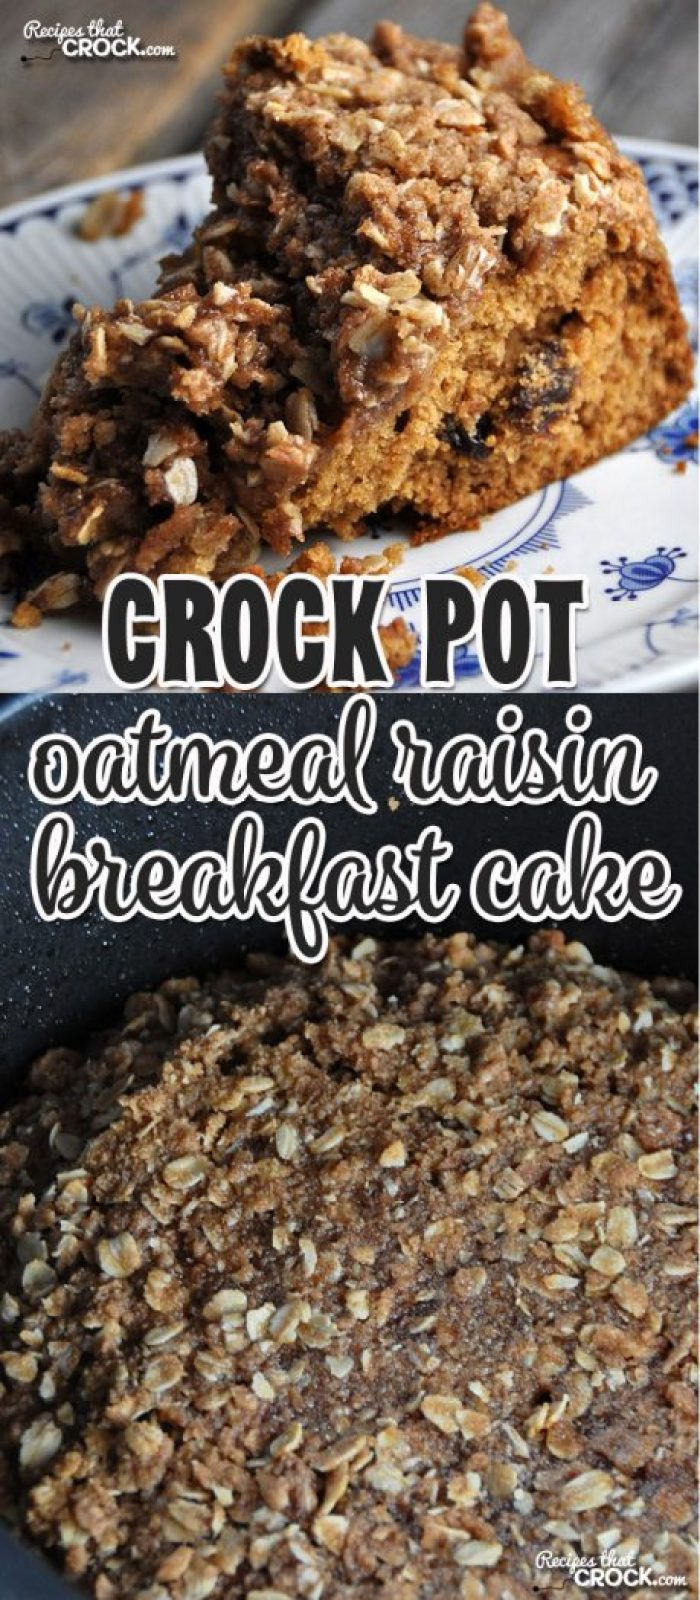 This Crock Pot Oatmeal Raisin Breakfast Cake will have your house smelling amazingly and is perfect for breakfast, brunch or dessert!